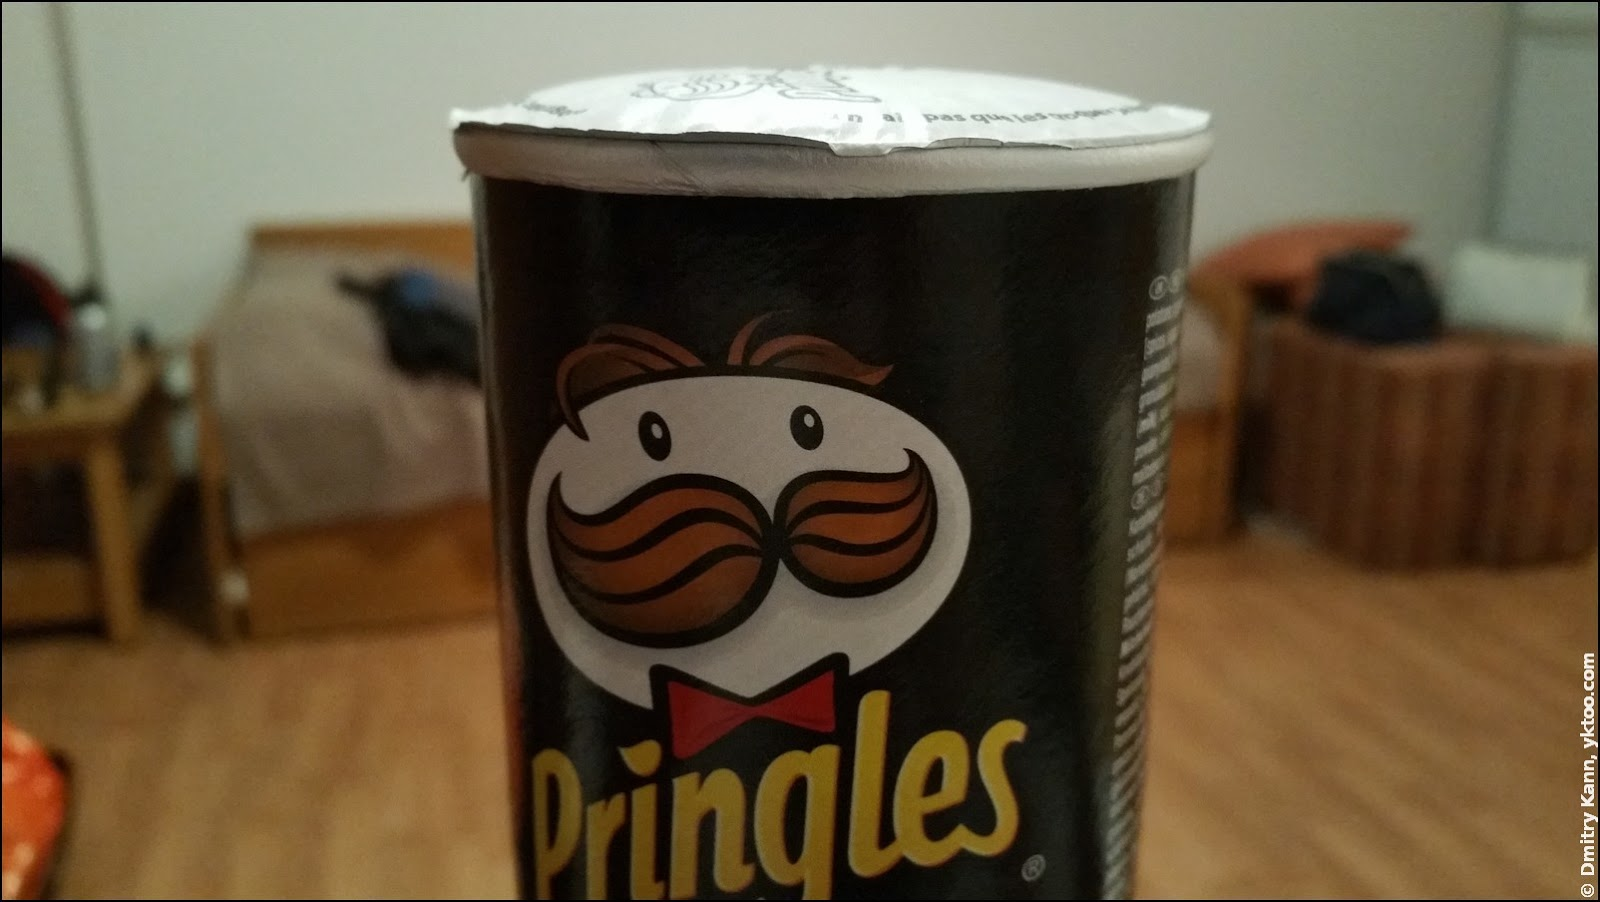 An inflated pack of Pringles.